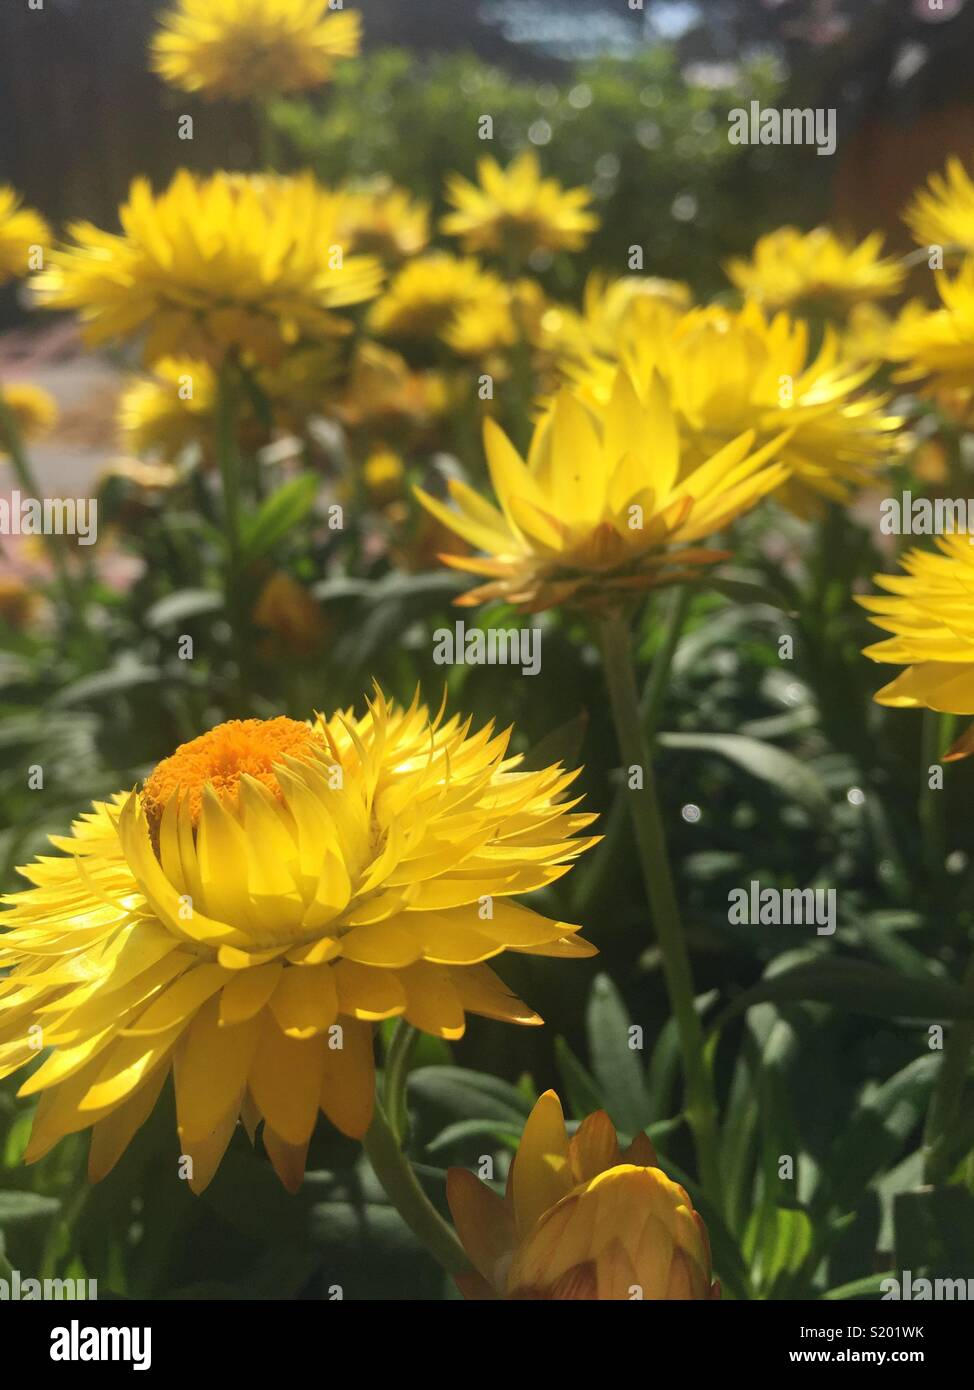 Florida flowers in spring stock photo 311017439 alamy florida flowers in spring izmirmasajfo